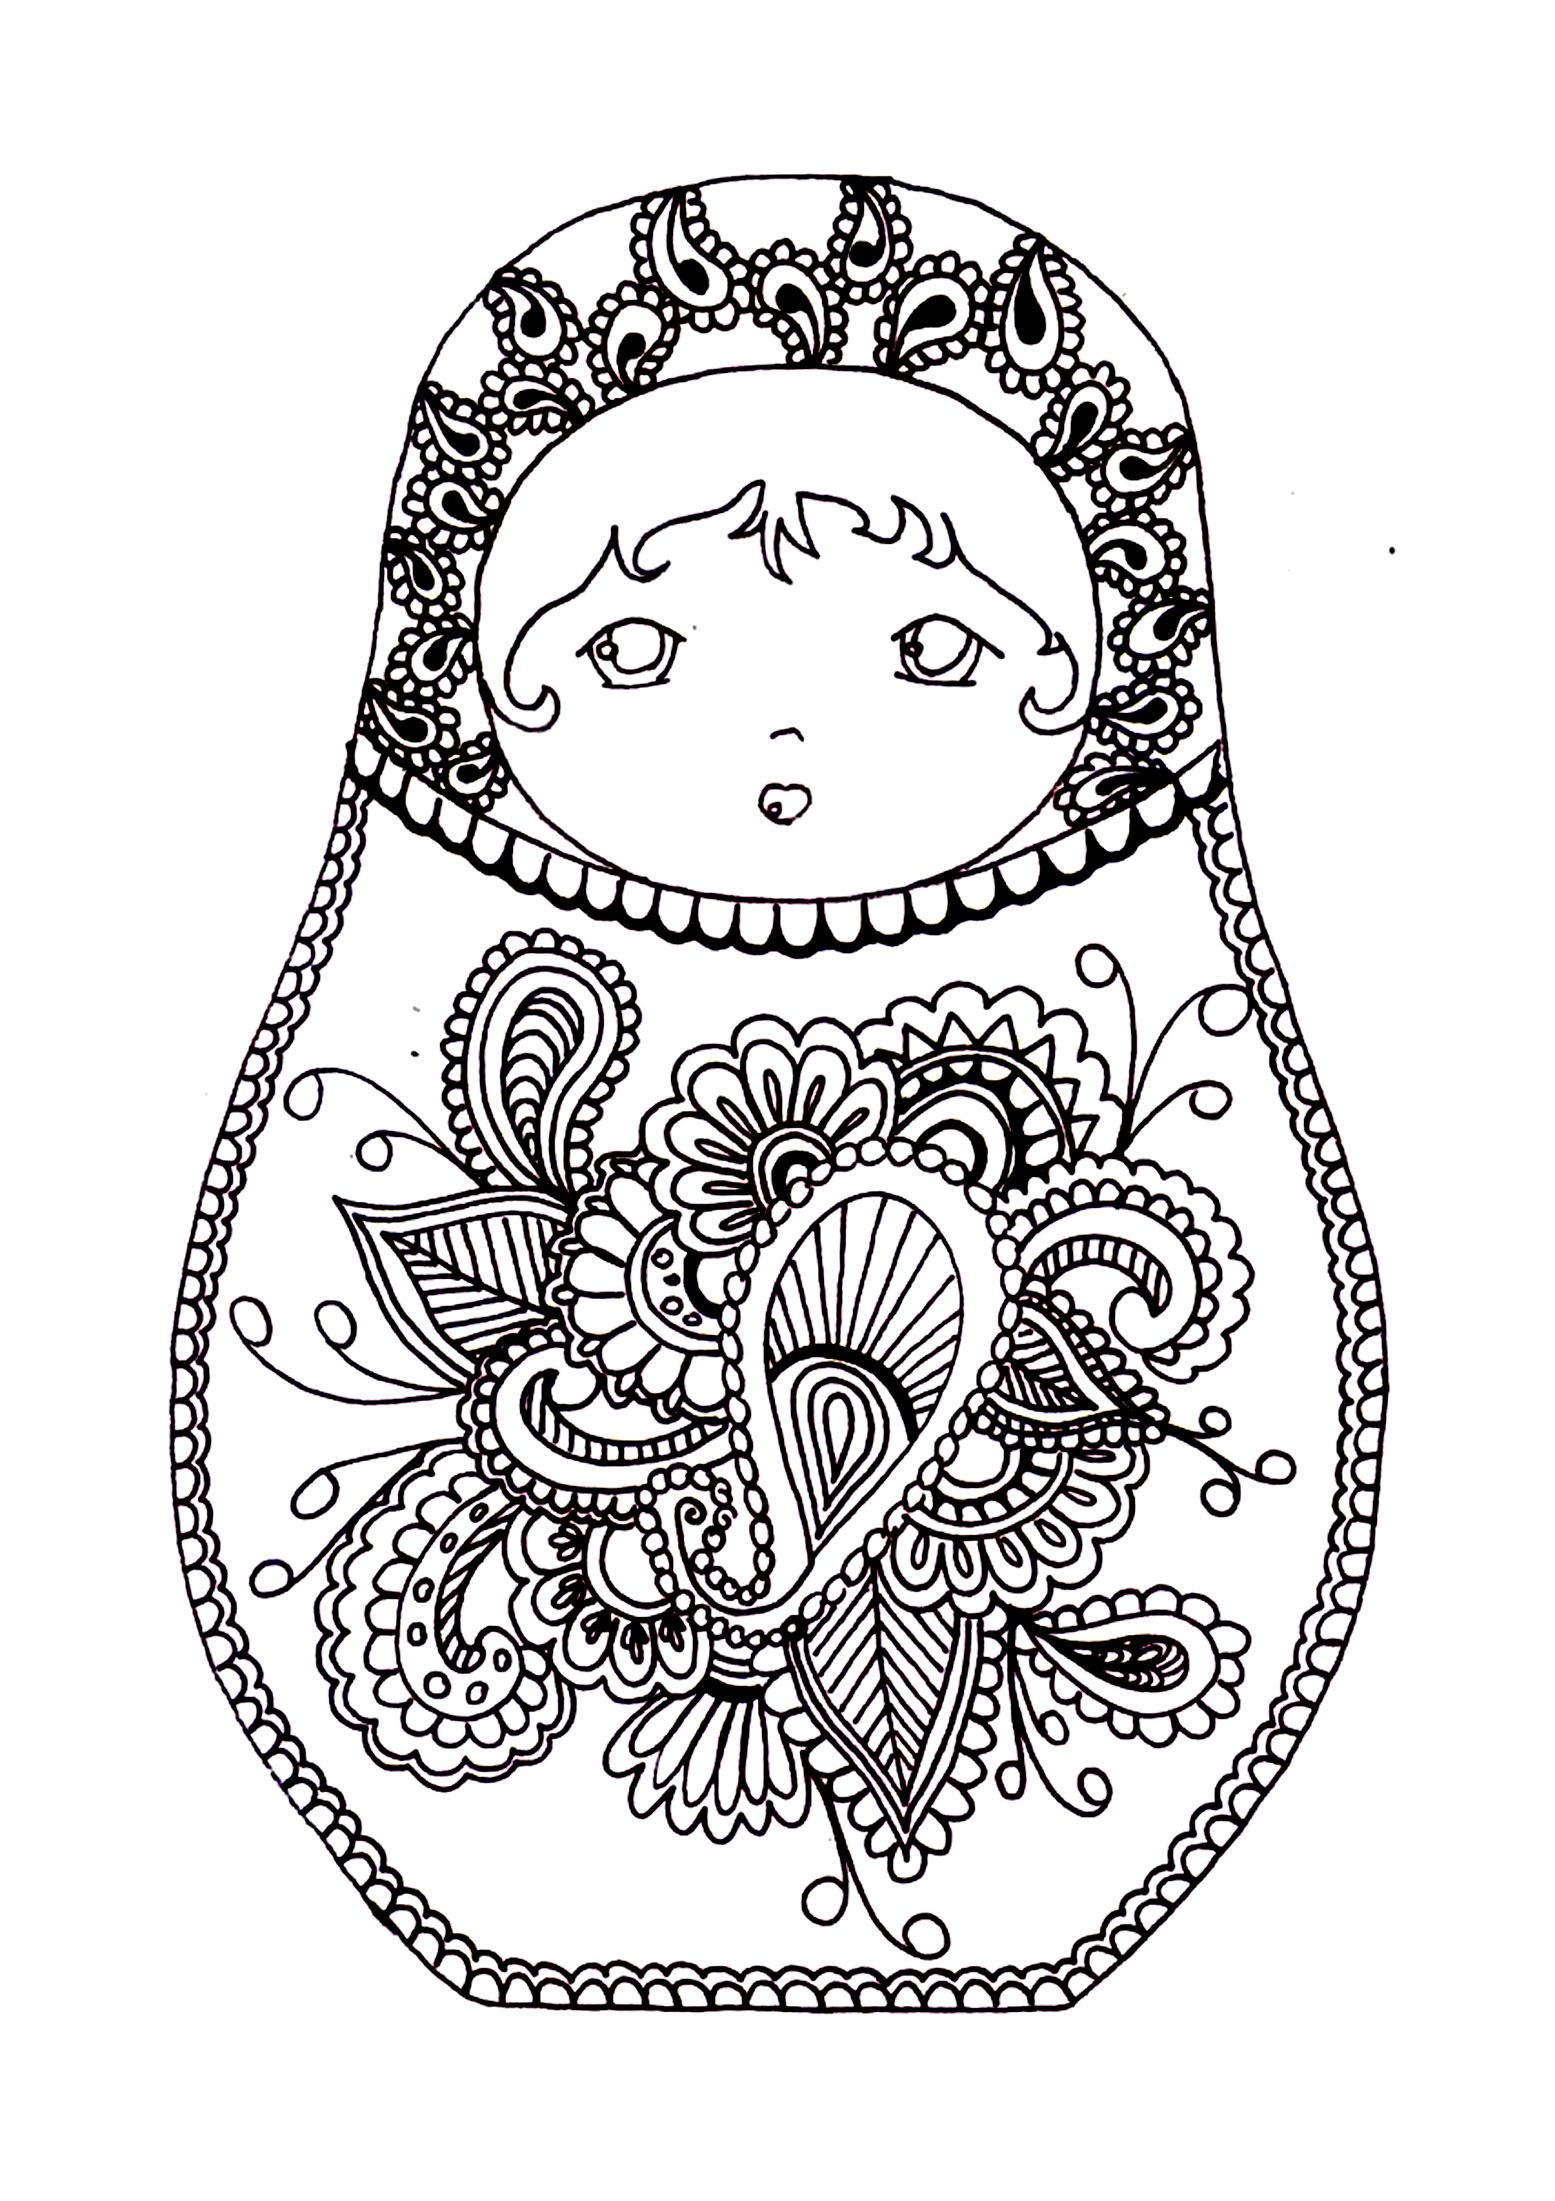 Russian Dolls 2 Russian Dolls Coloring Pages For Adults Just